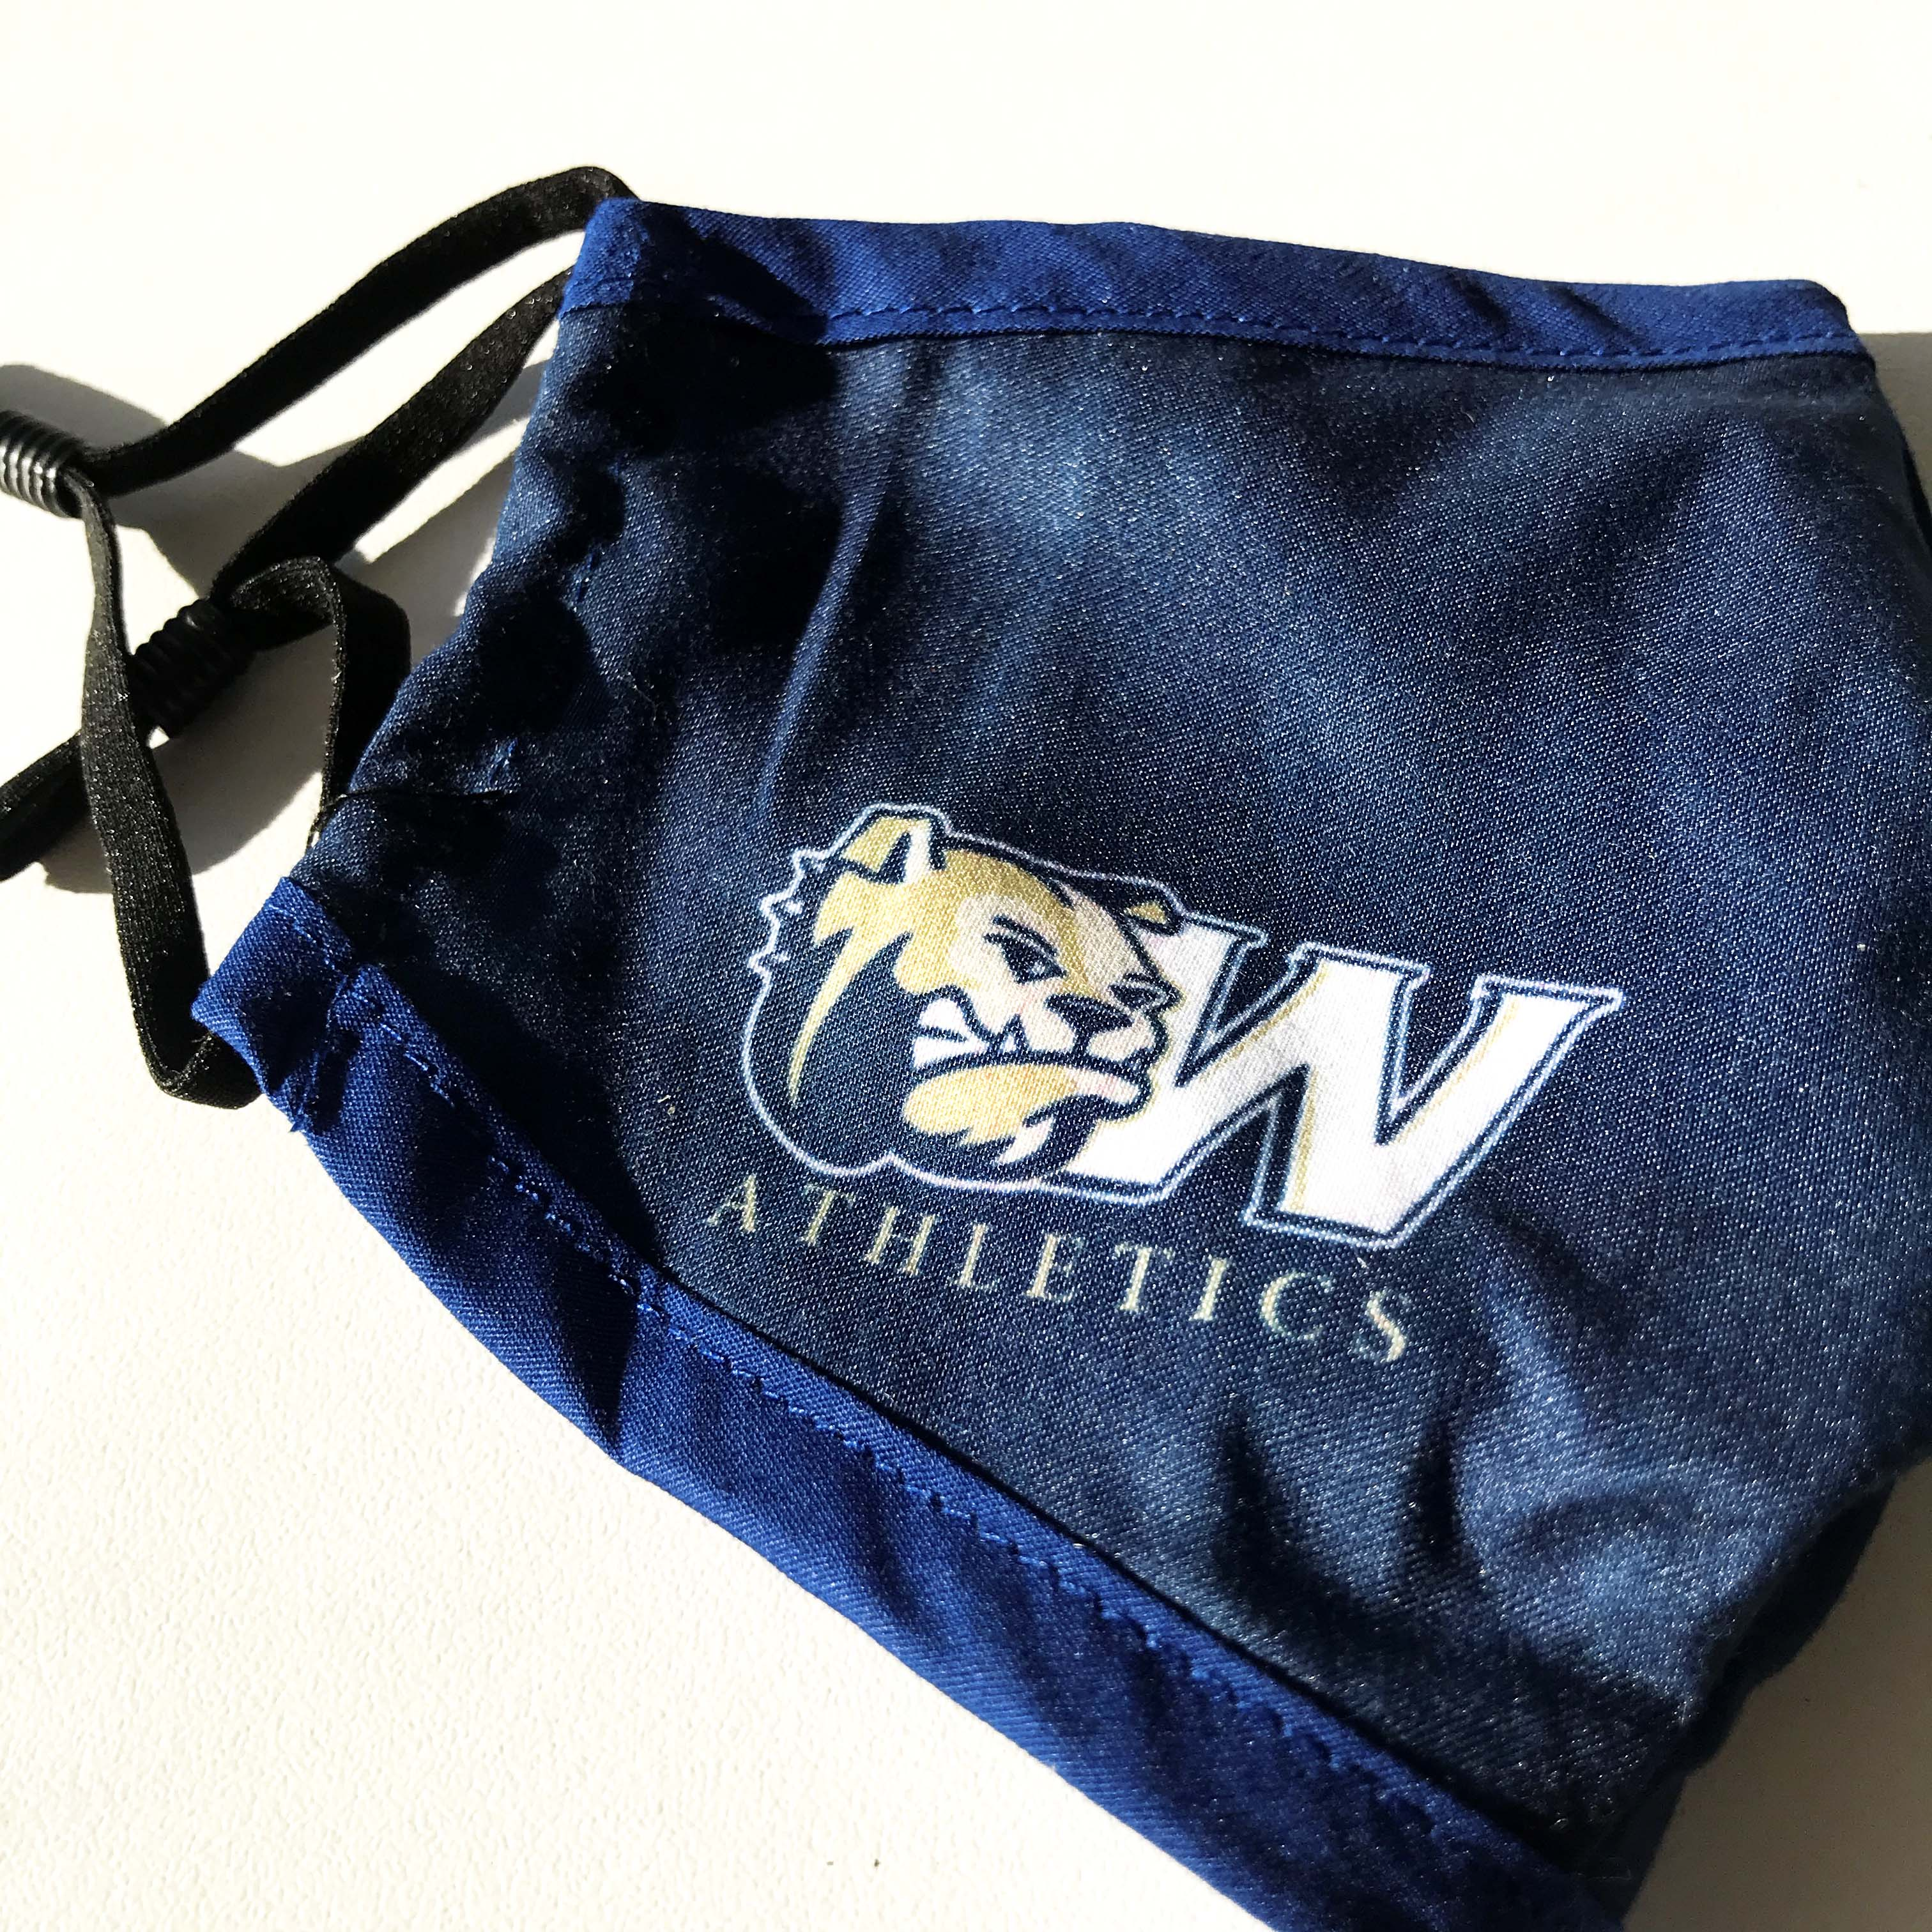 W Athletics Face Mask.